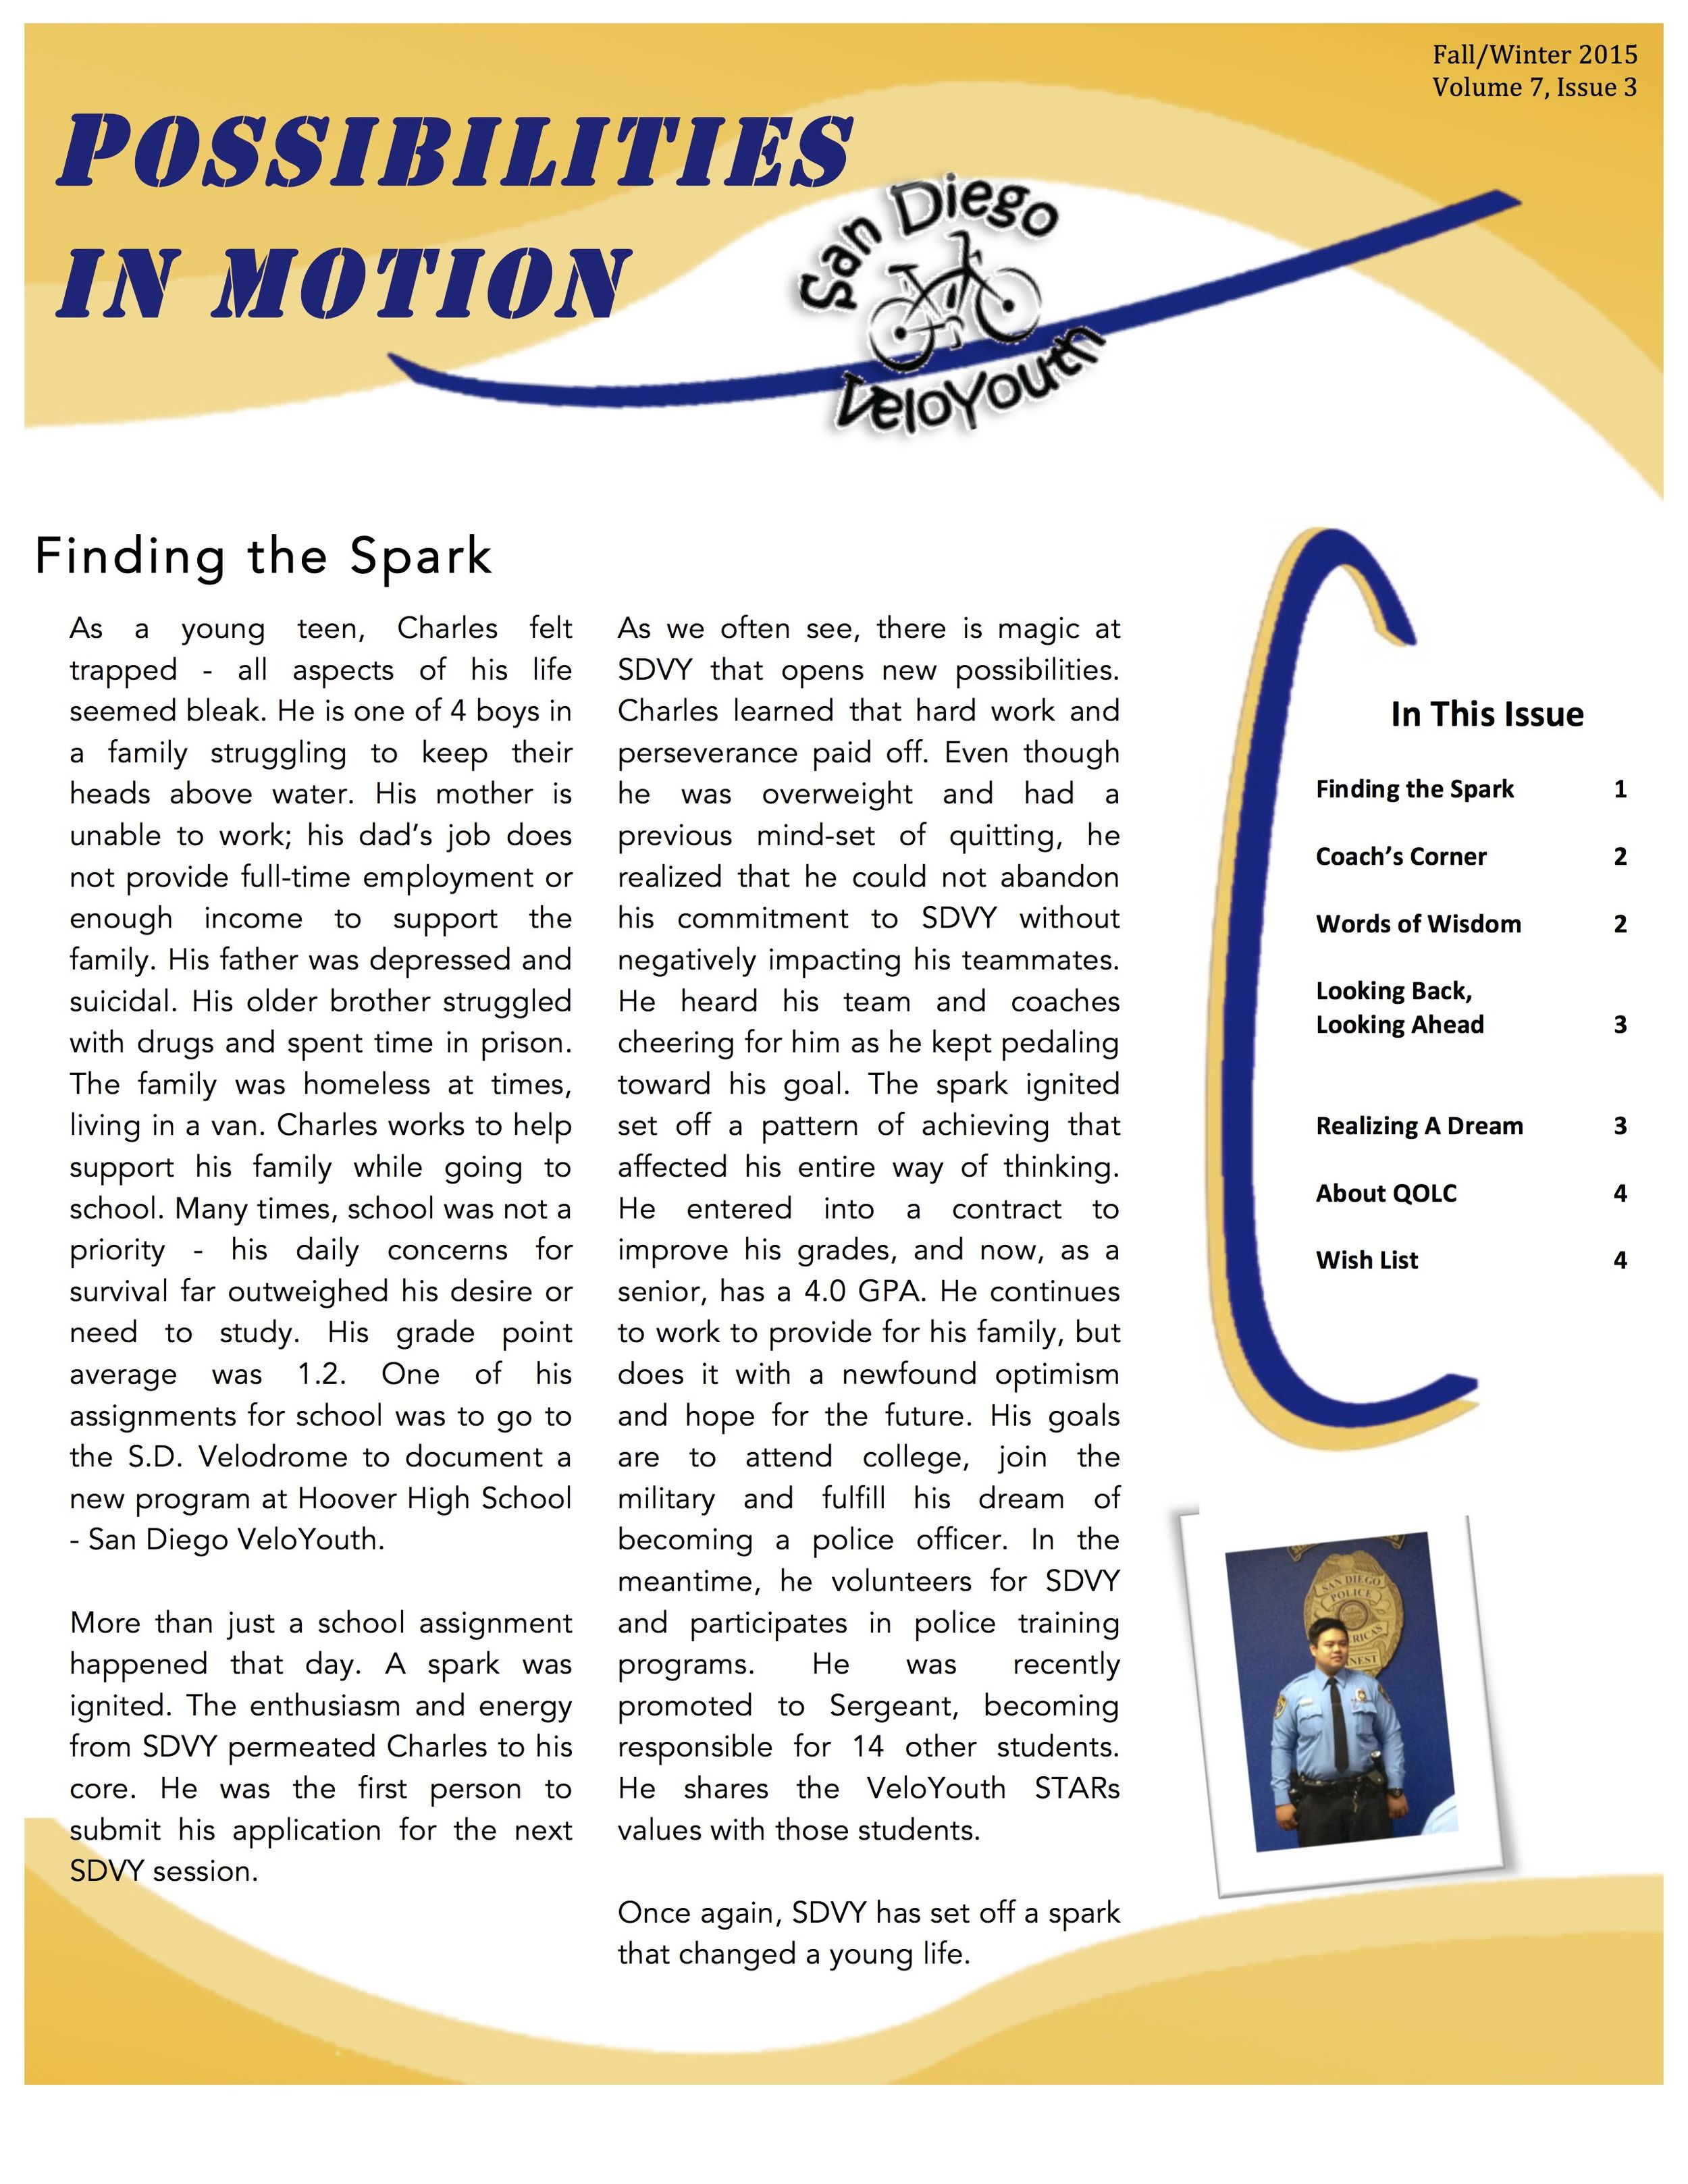 Possibilities In Motion 2015 Page 1.jpg